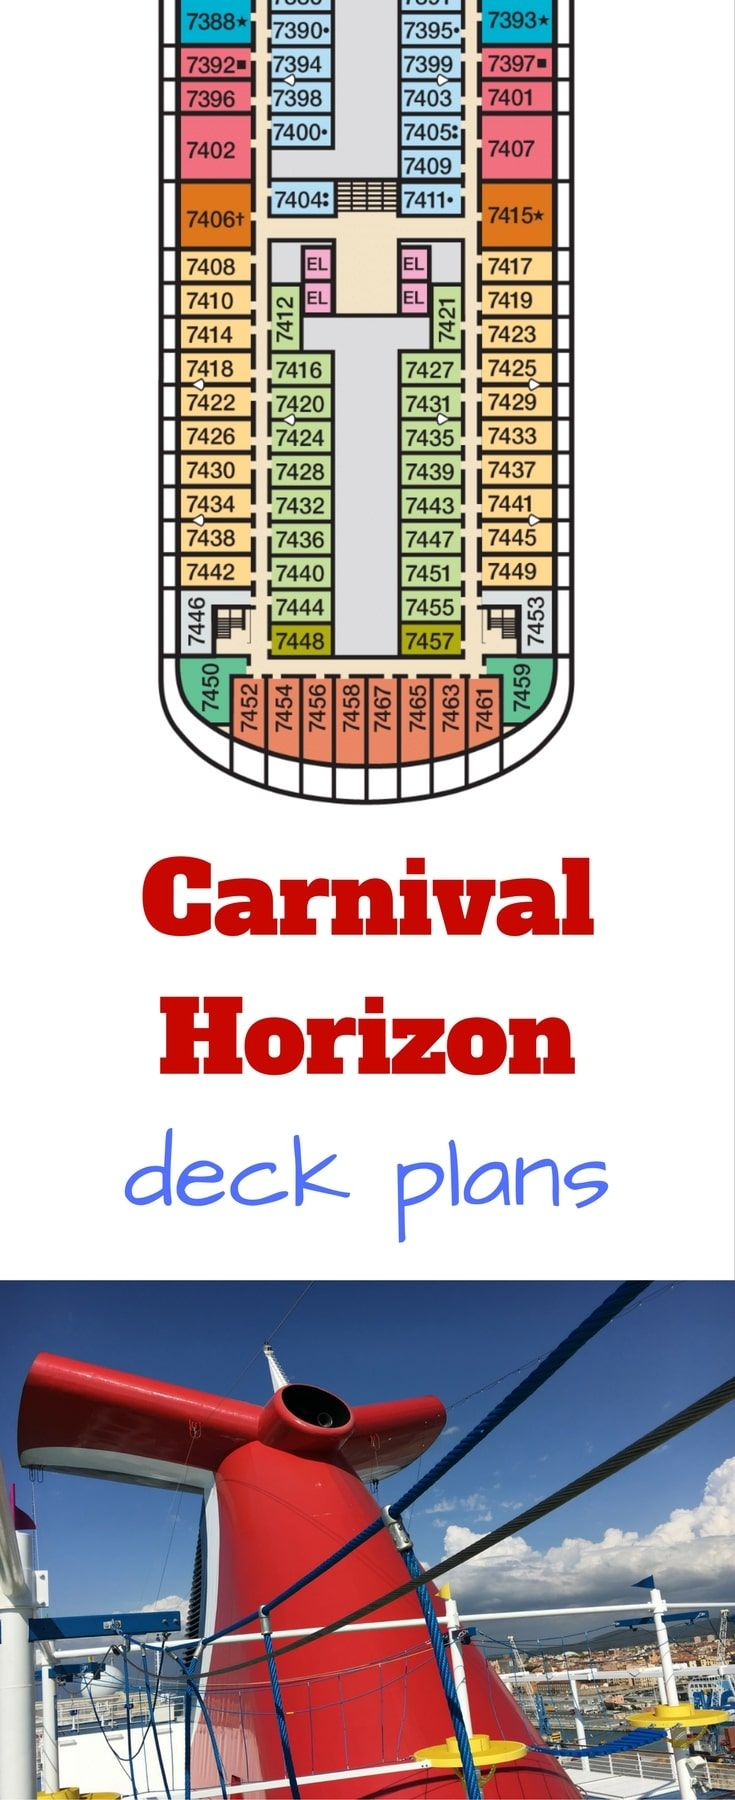 Carnival Horizon Deck Plans in 2019 | Carnival Cruise Line ... on